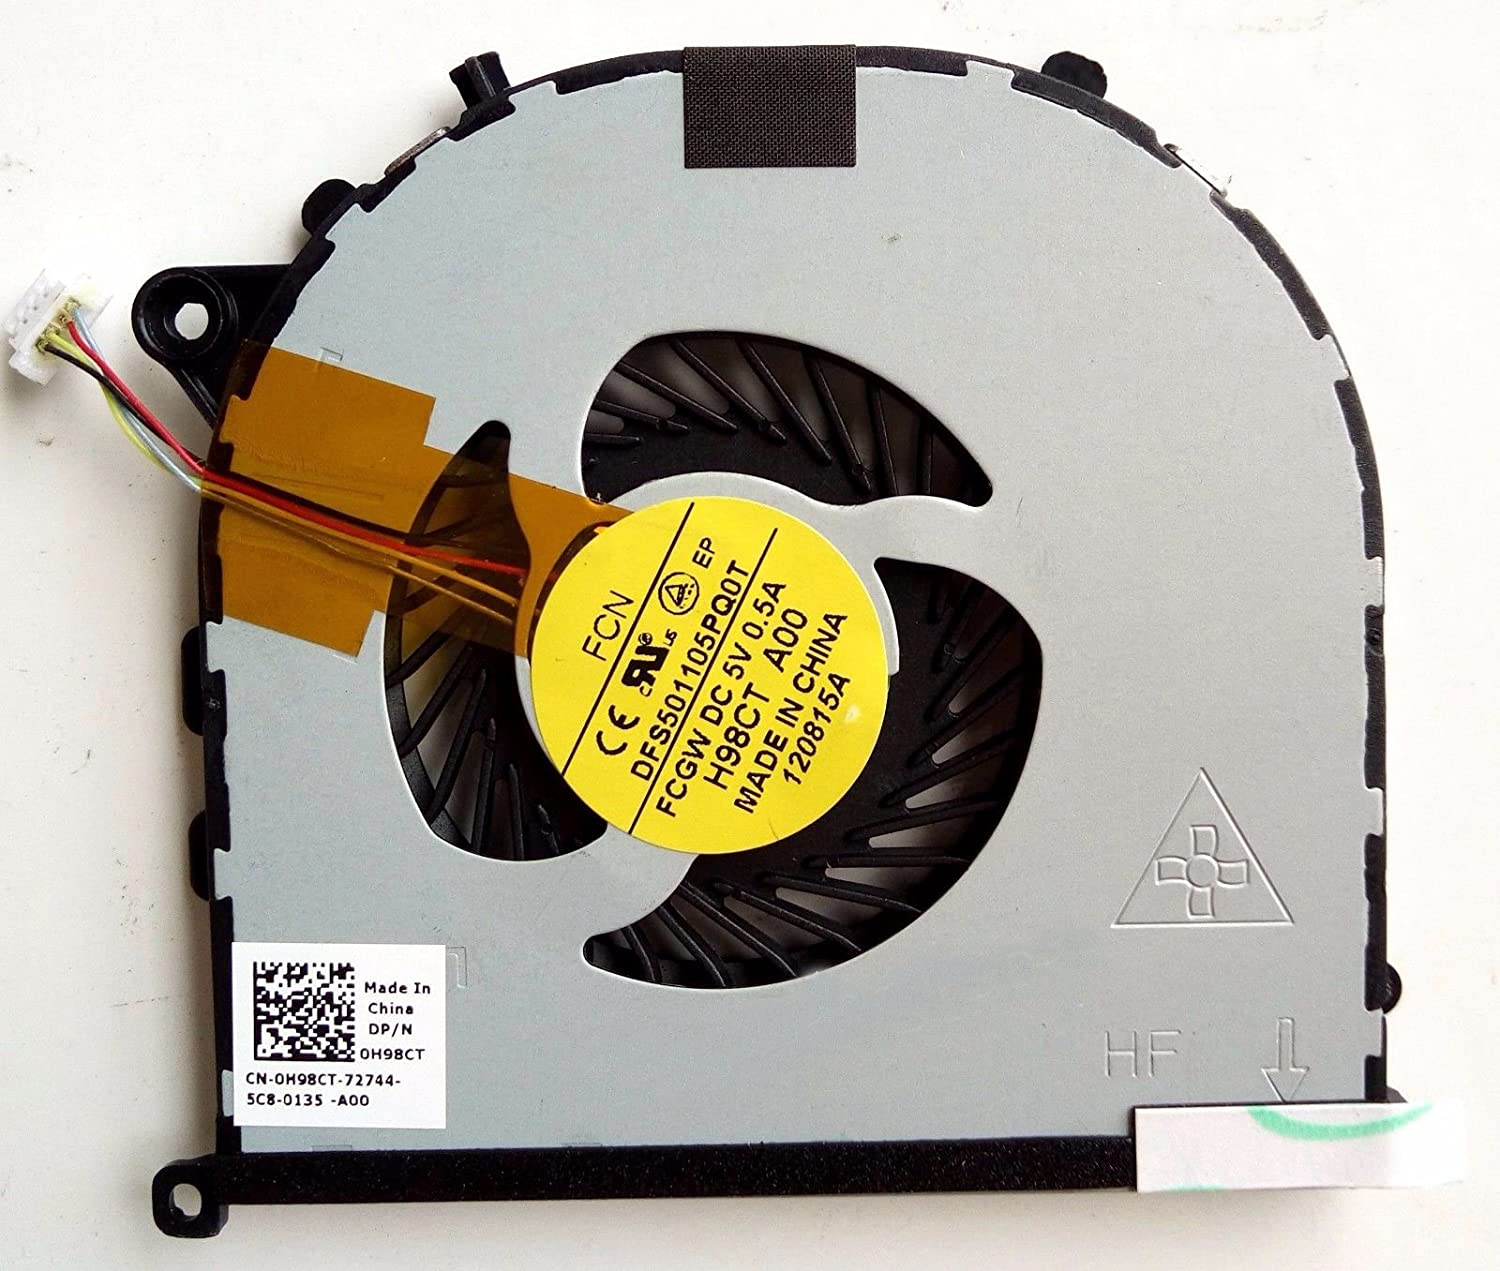 HK-part Replacement Fan for Dell XPS 15 9530 Precision M3800 series Cpu Cooling Fan Right Side DP/N 0H98CT 3-Pin 3-Wire